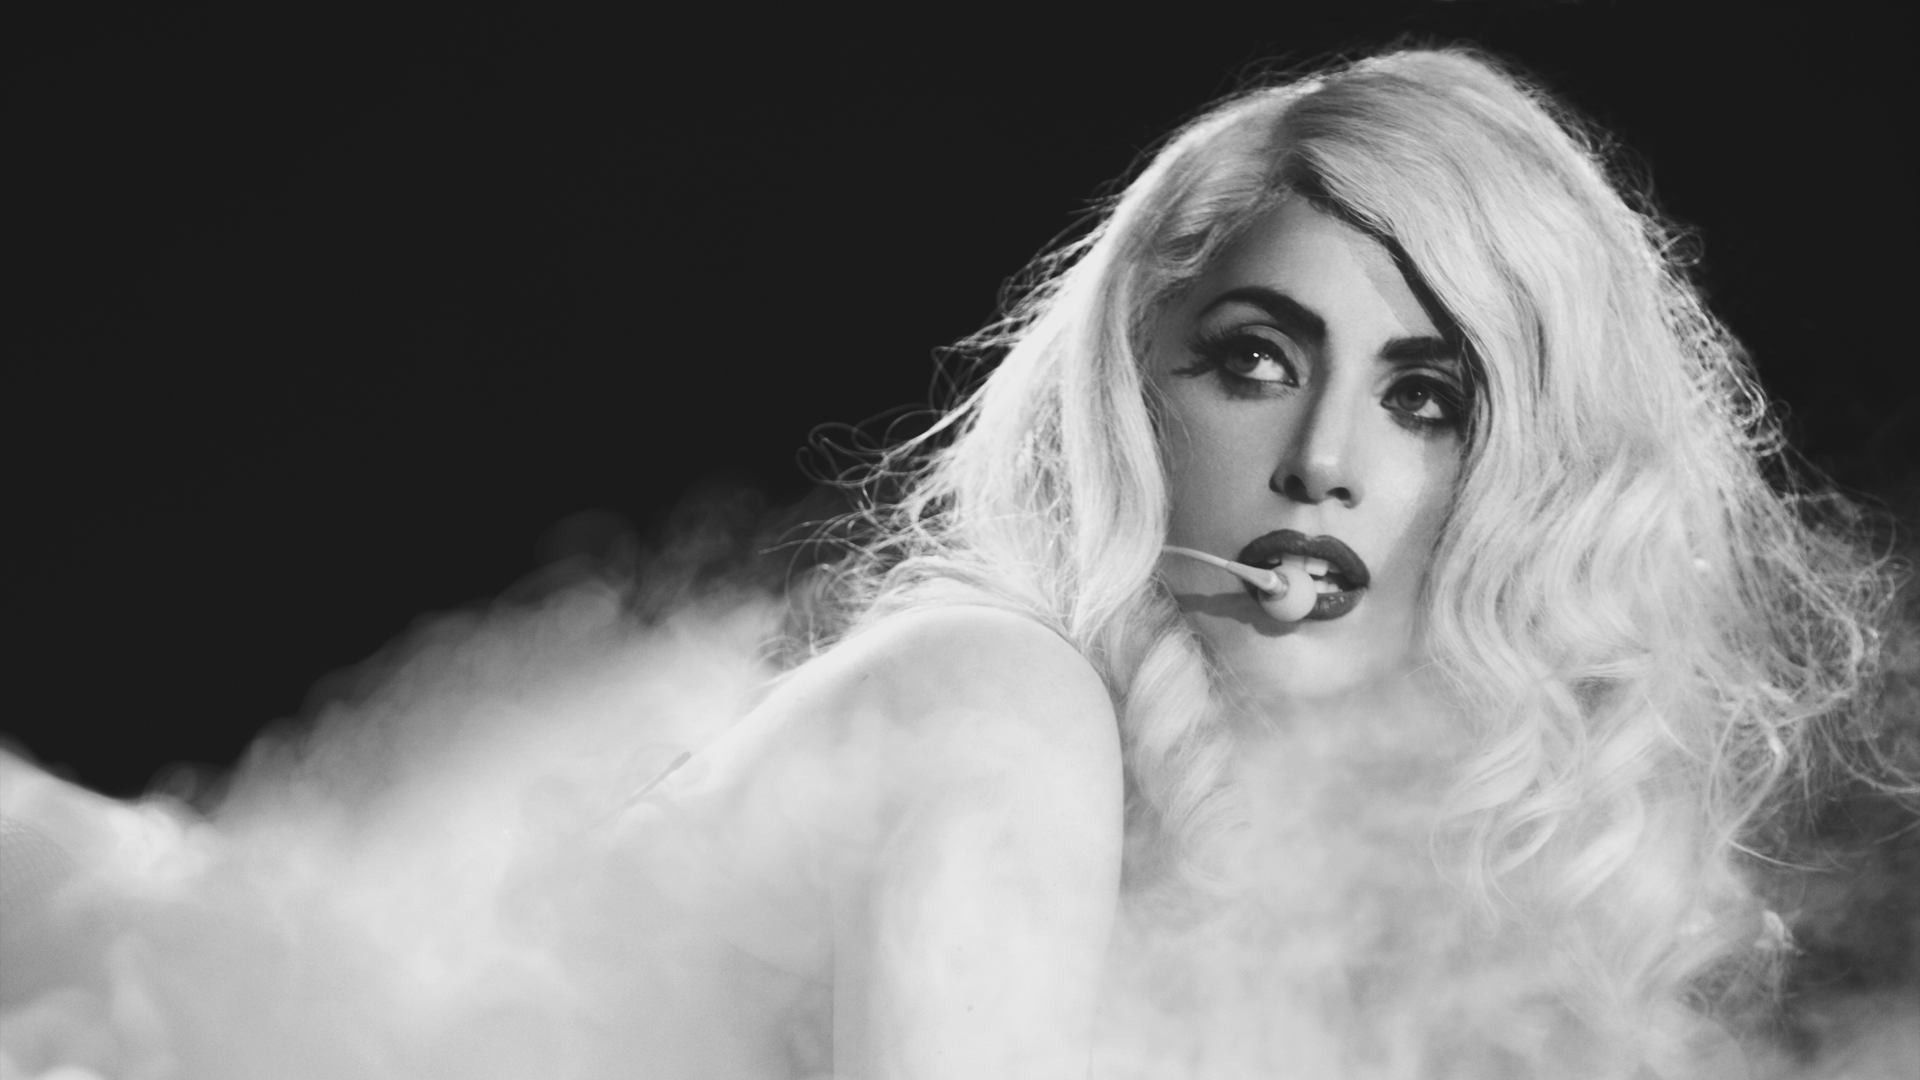 2560x1600 WallpapersWide.com ❤ Lady Gaga Wallpapers HD Desktop Wallpapers for ... 2560x1600 WallpapersWide.com ...